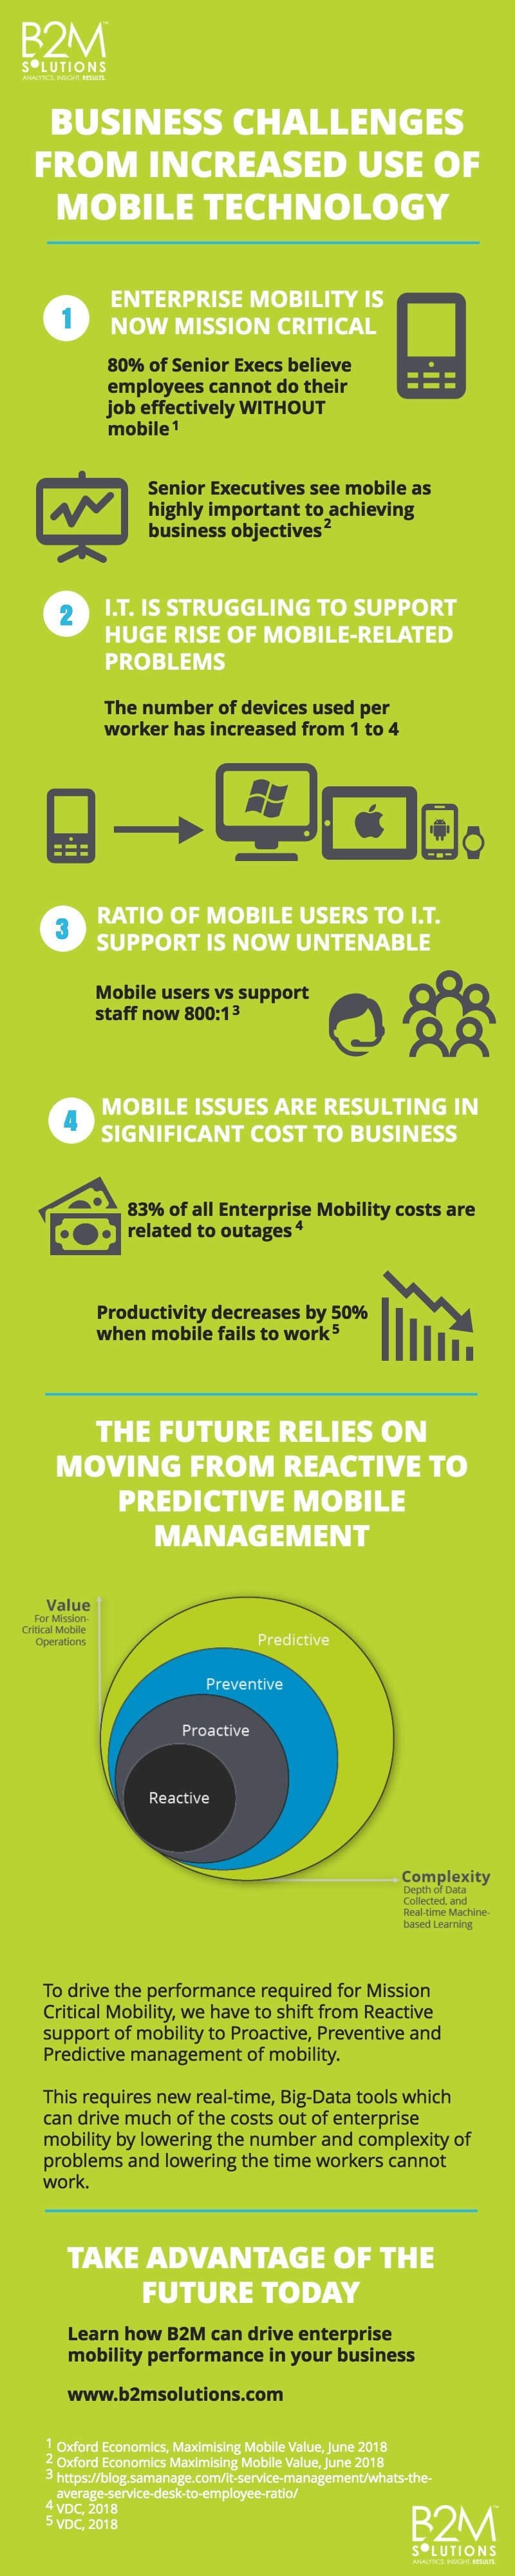 Business Challenges from increased use of mobile technology